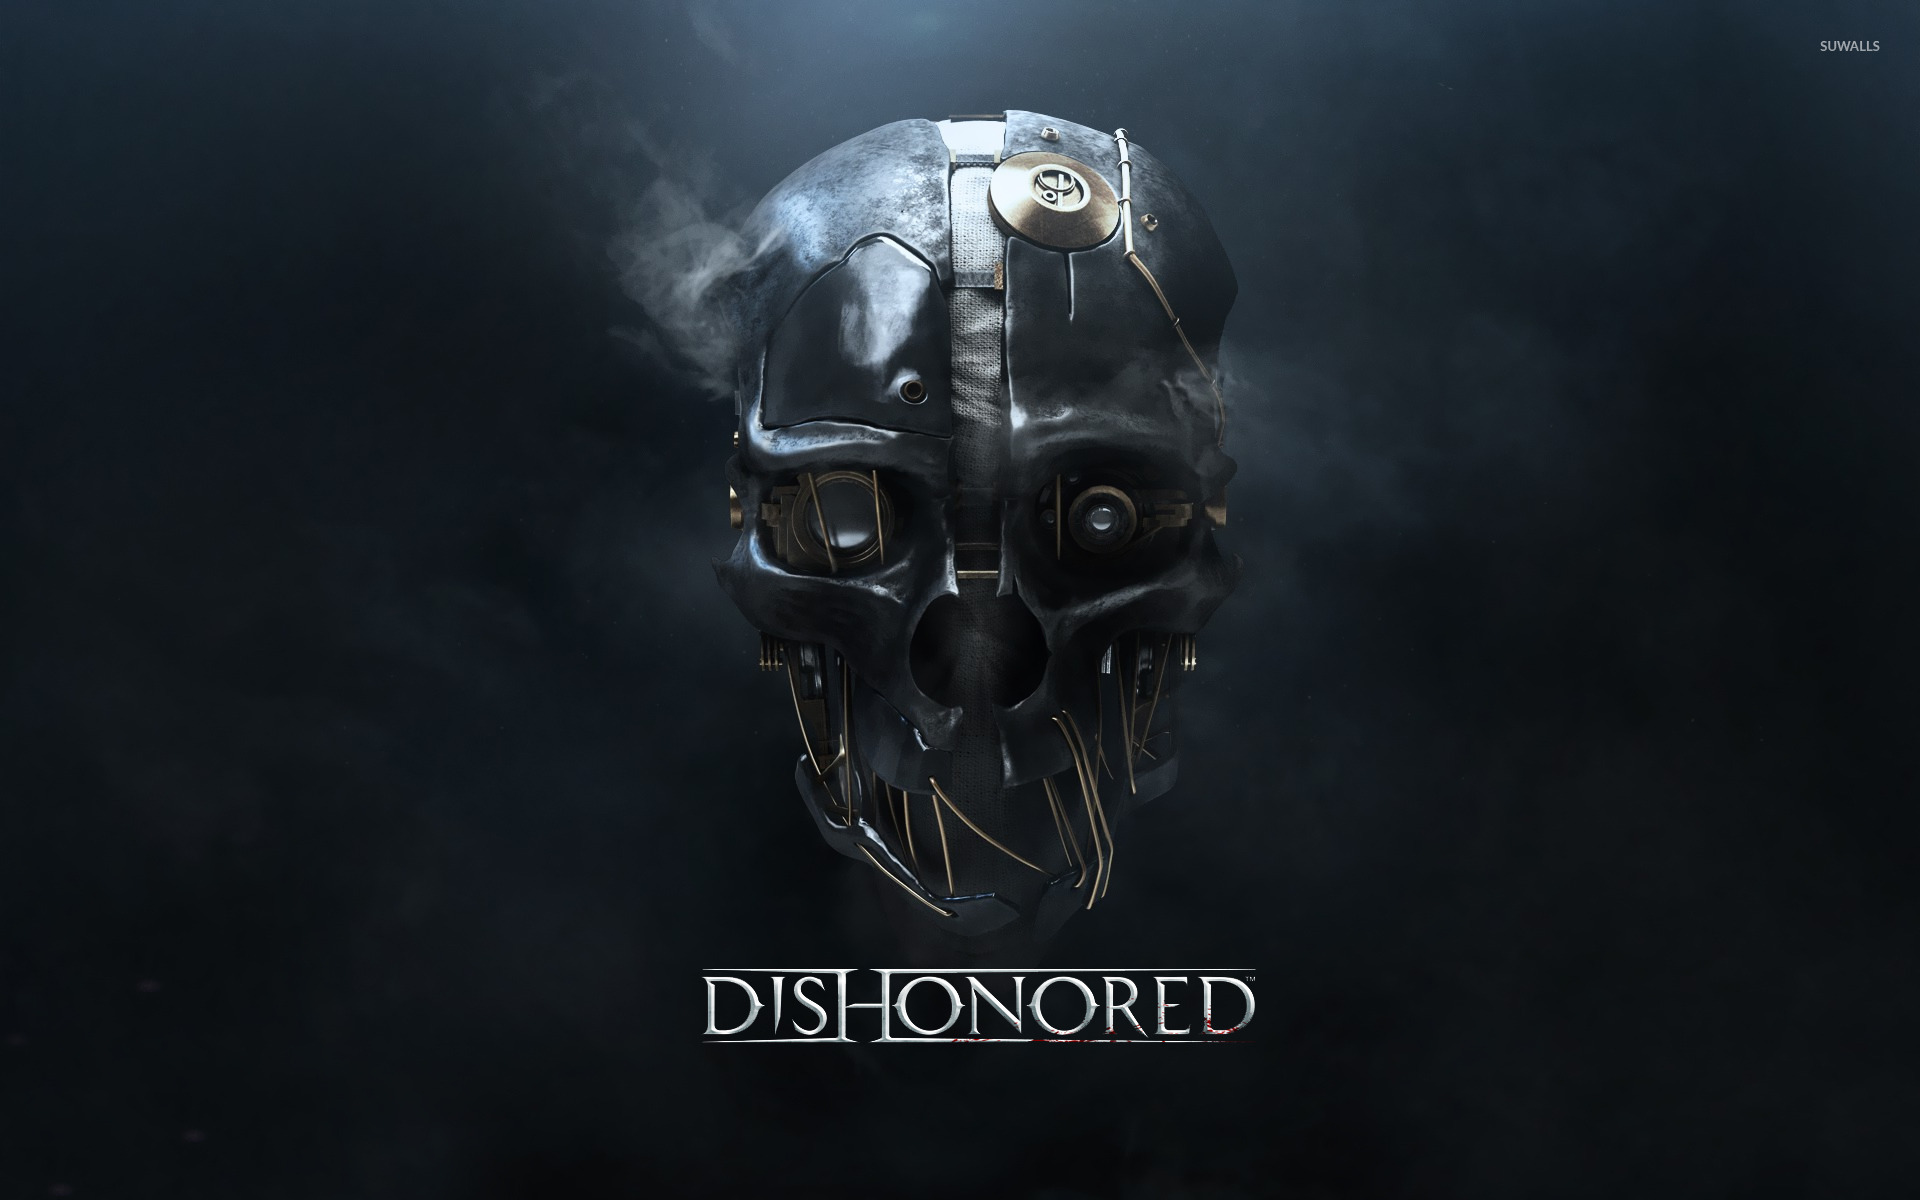 Dishonored 4 Wallpaper Game Wallpapers 15257